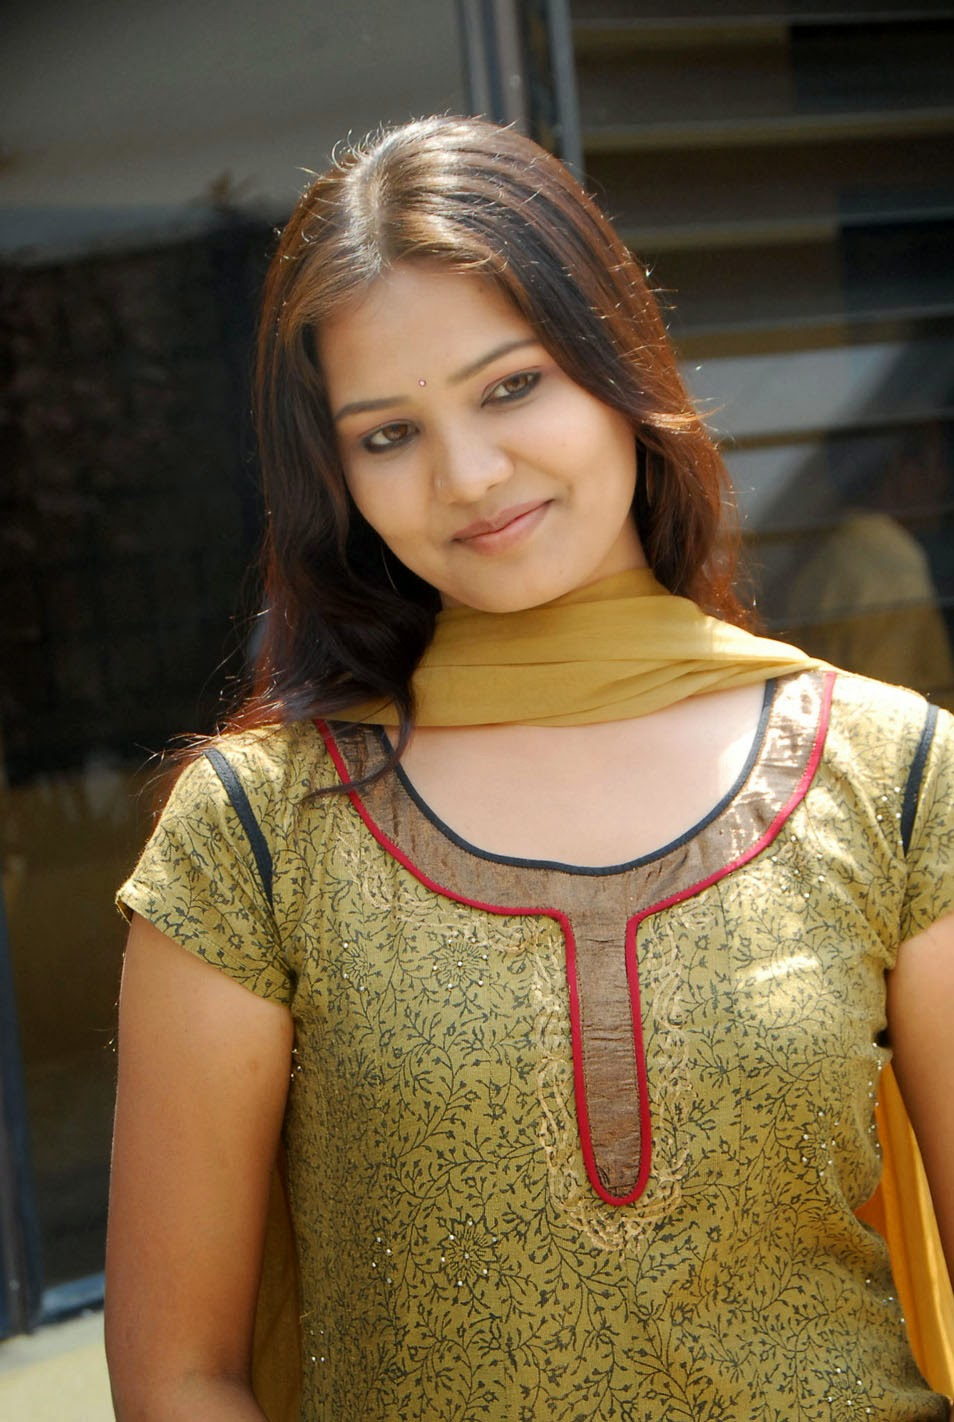 Telugu Movie Actress Thanmai Beautiful Photo Stills, Thanmai, Thanmai Hot Images, Telugu Movie Actress, Tollywood Actress, Actress HD Photo Gallery, HD Actress Gallery, latest Actress HD Photo Gallery, Latest actress Stills, Indian Actress, Beautiful pics,